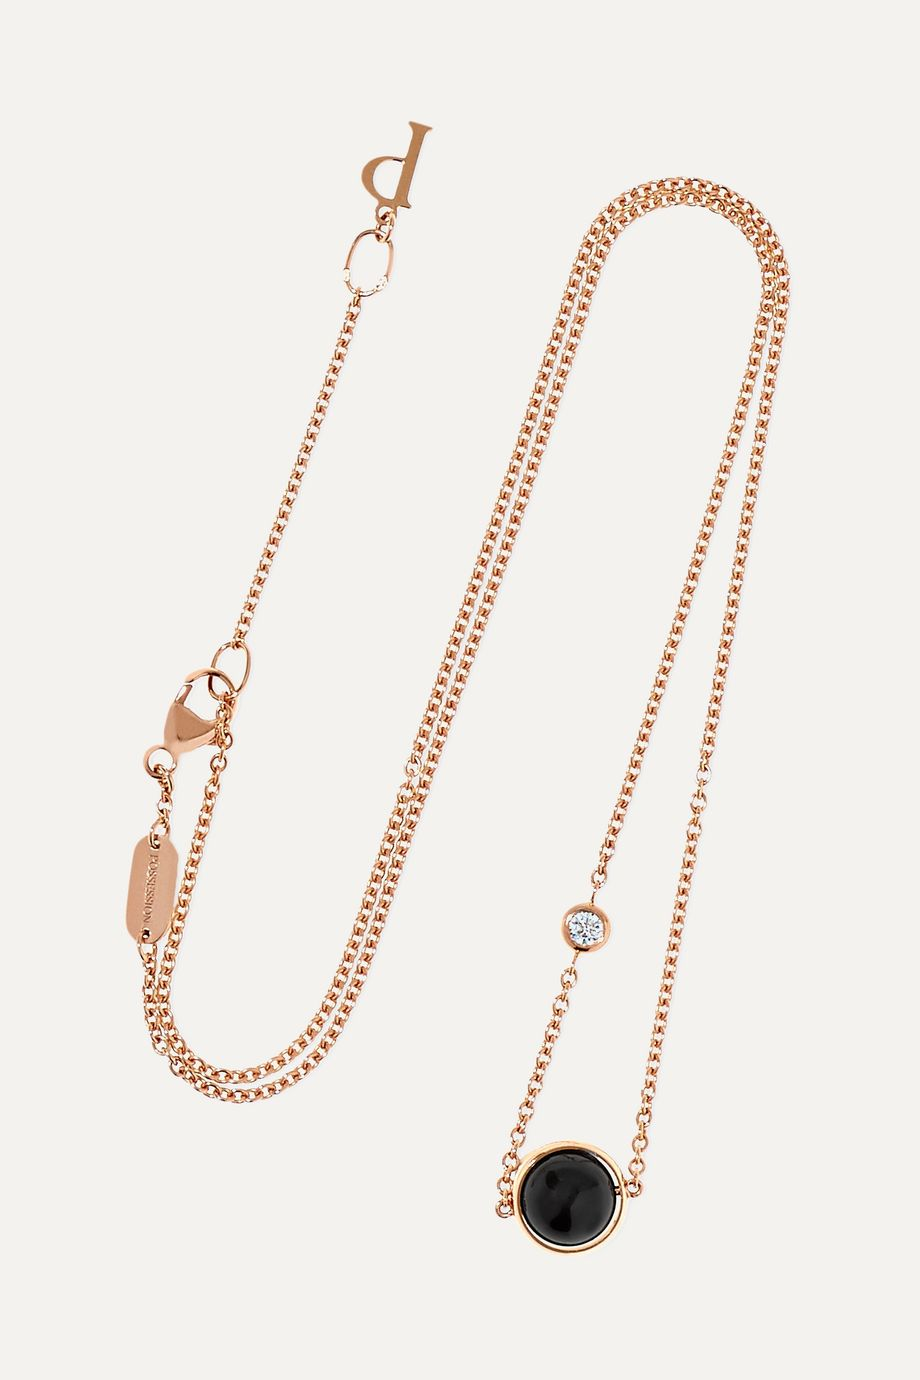 Piaget Possession 18-karat rose gold, onyx and diamond necklace